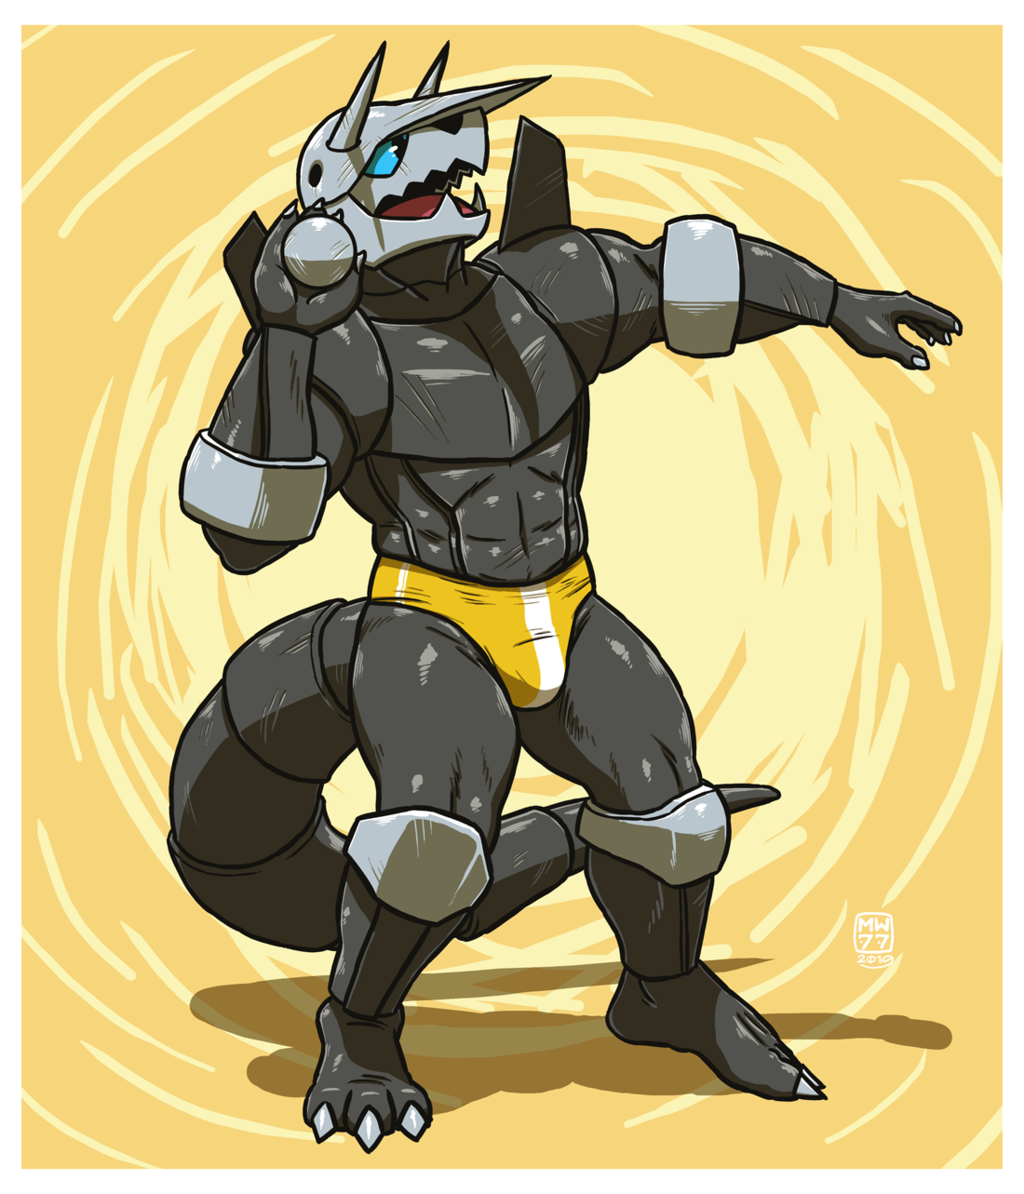 AGGRON : Ball of steel